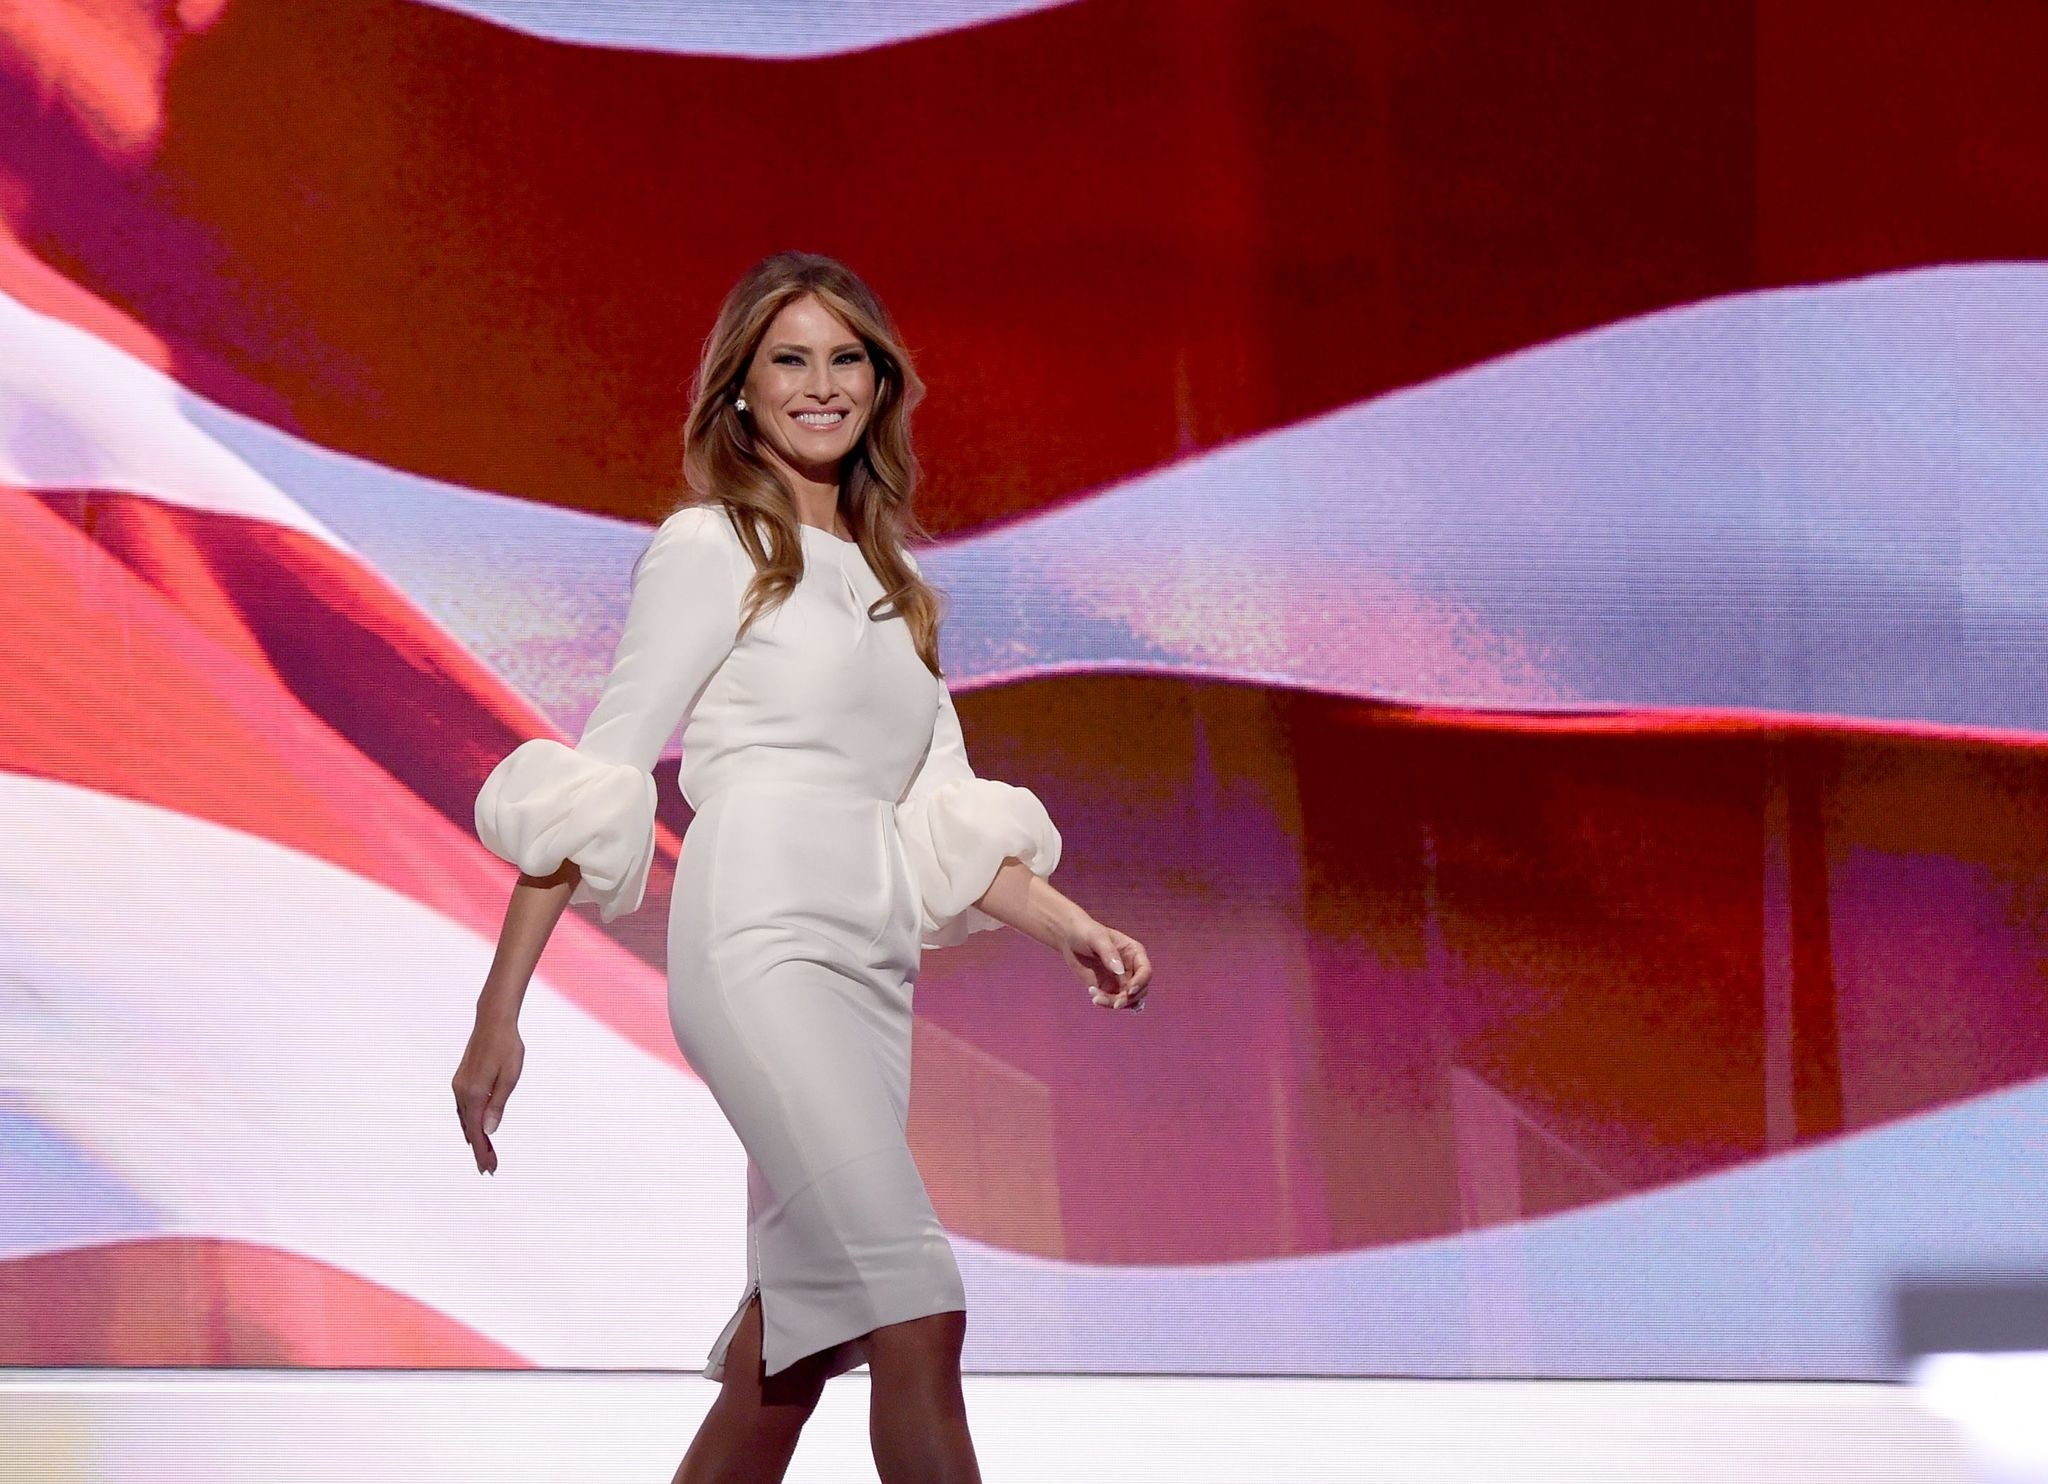 Melania Trump, wife of Republican presidential candidate Donald Trump, arriving on stage on the first day of the Republican National Convention at the Quicken Loans Arena in Cleveland, Ohio. (AFP Photo)